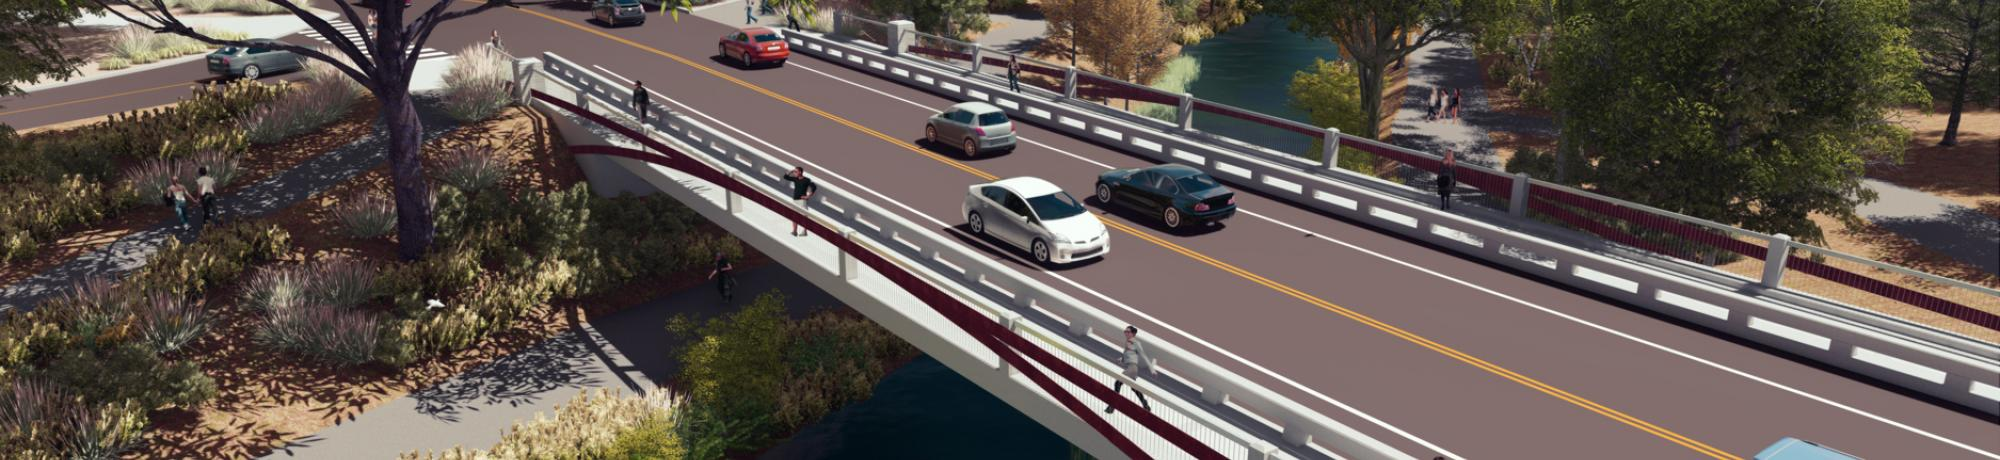 Rendering of the future La Rue Road Bridge.